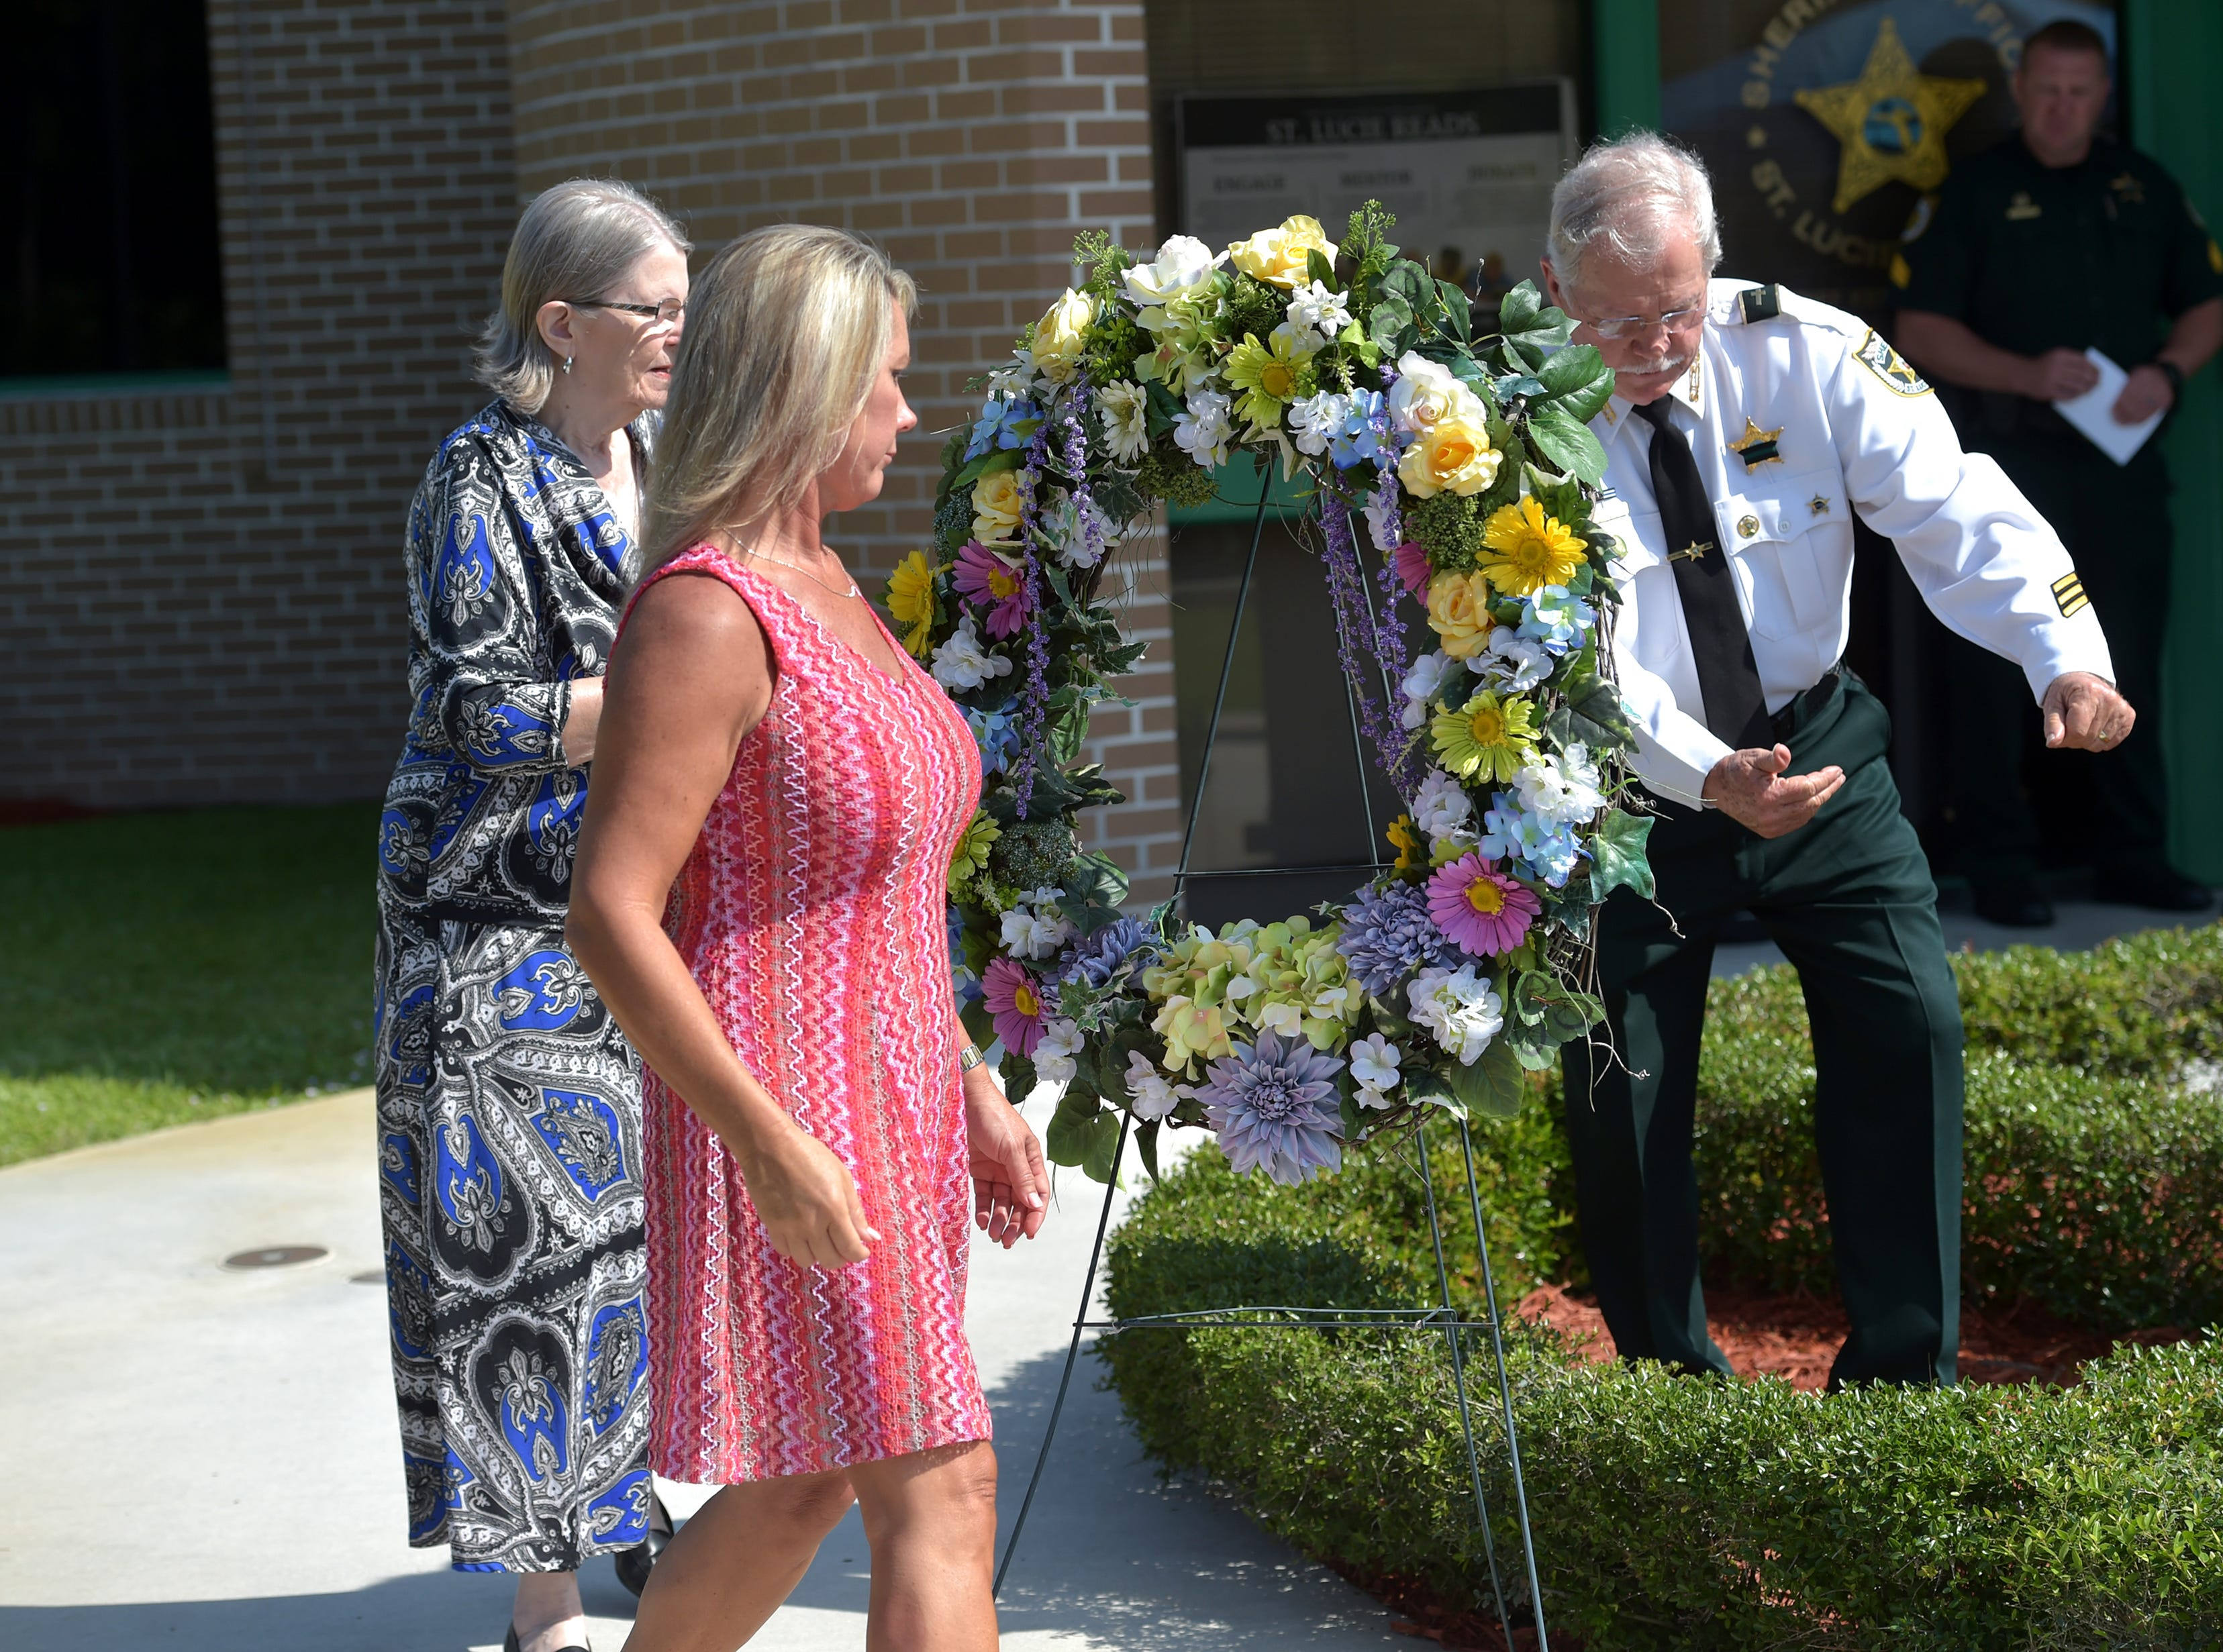 The St. Lucie County Sheriff's Office Laying of the Wreath Service for National Law Enforcement Memorial Week on Monday, May 6, 2019, in Fort Pierce. The St. Lucie County Sheriff's Office memorial honored the eight heroes and one K9 that gave their lives serving the community of St. Lucie County.